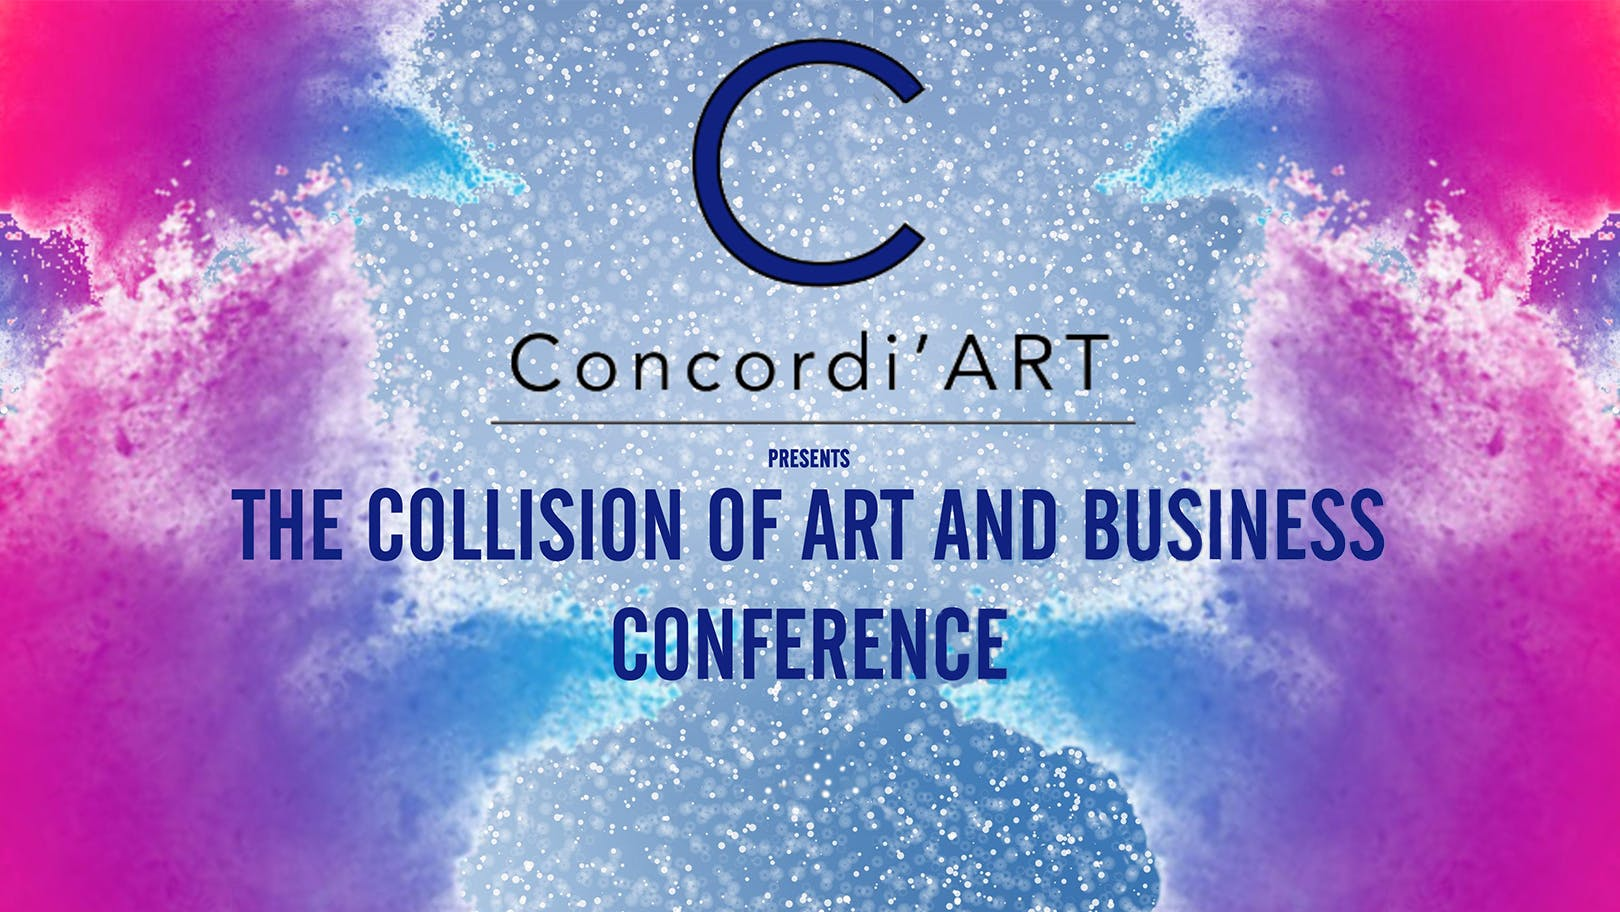 The Collision of Art and Business Conference